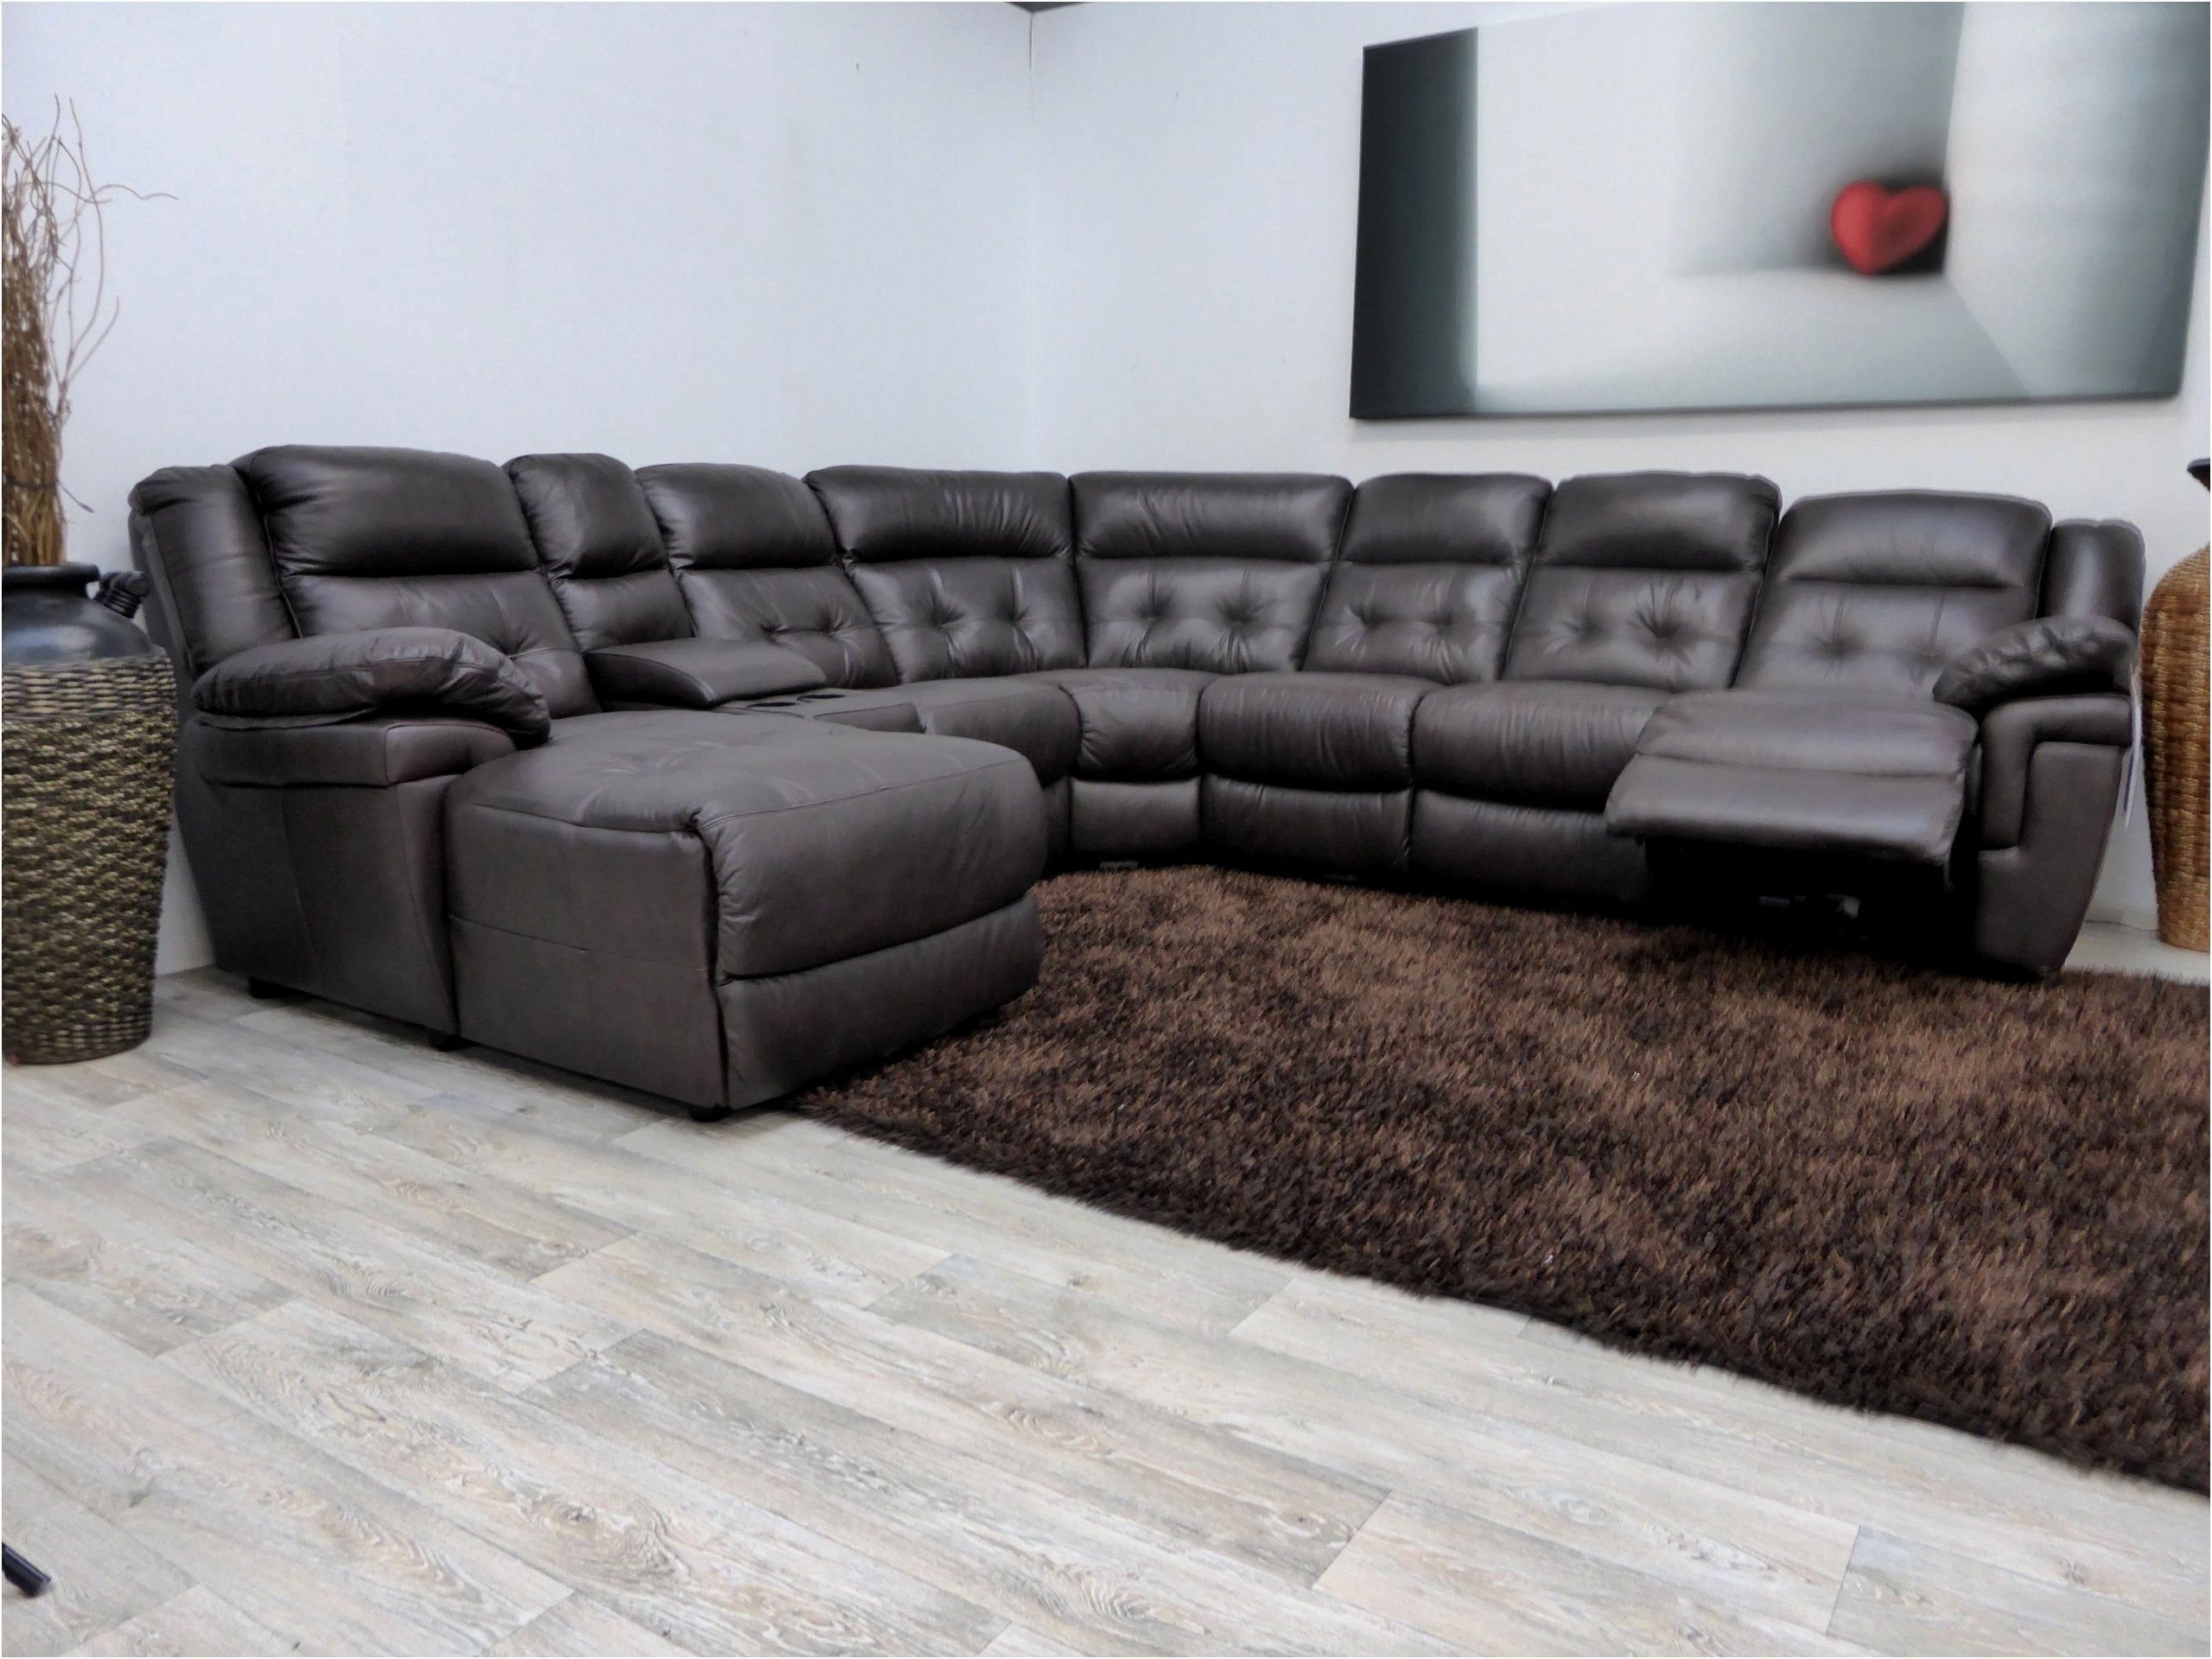 incredible sofa set clearance image-Contemporary sofa Set Clearance Wallpaper